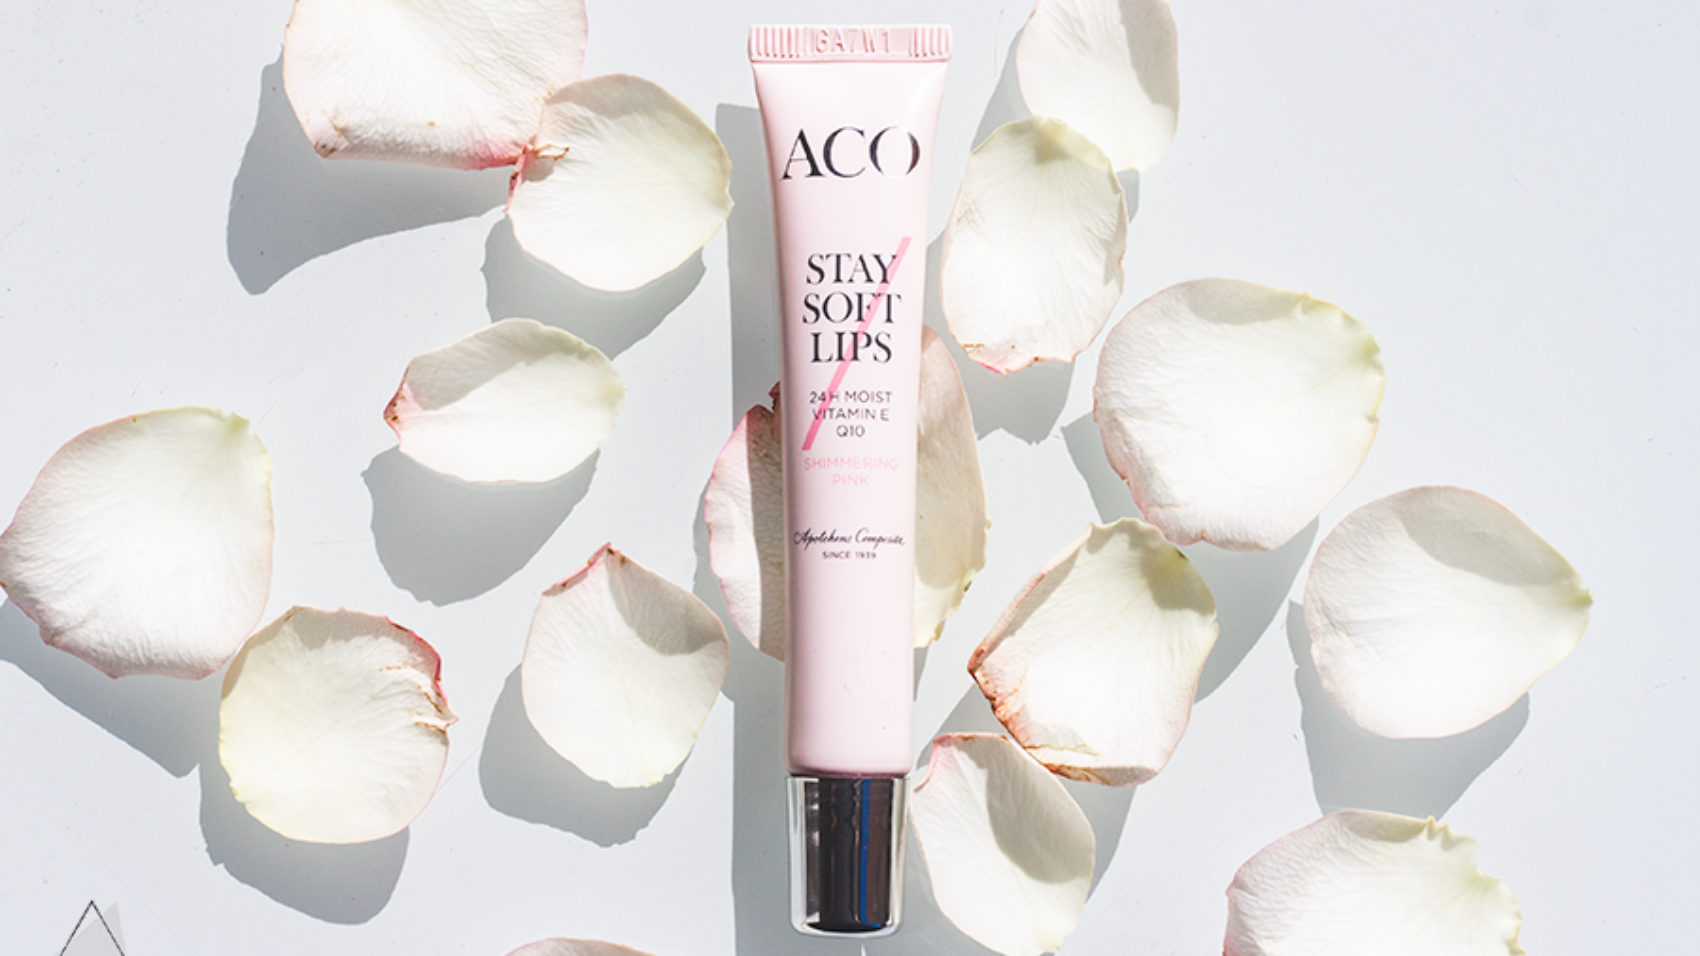 Aco Stay Soft Lips